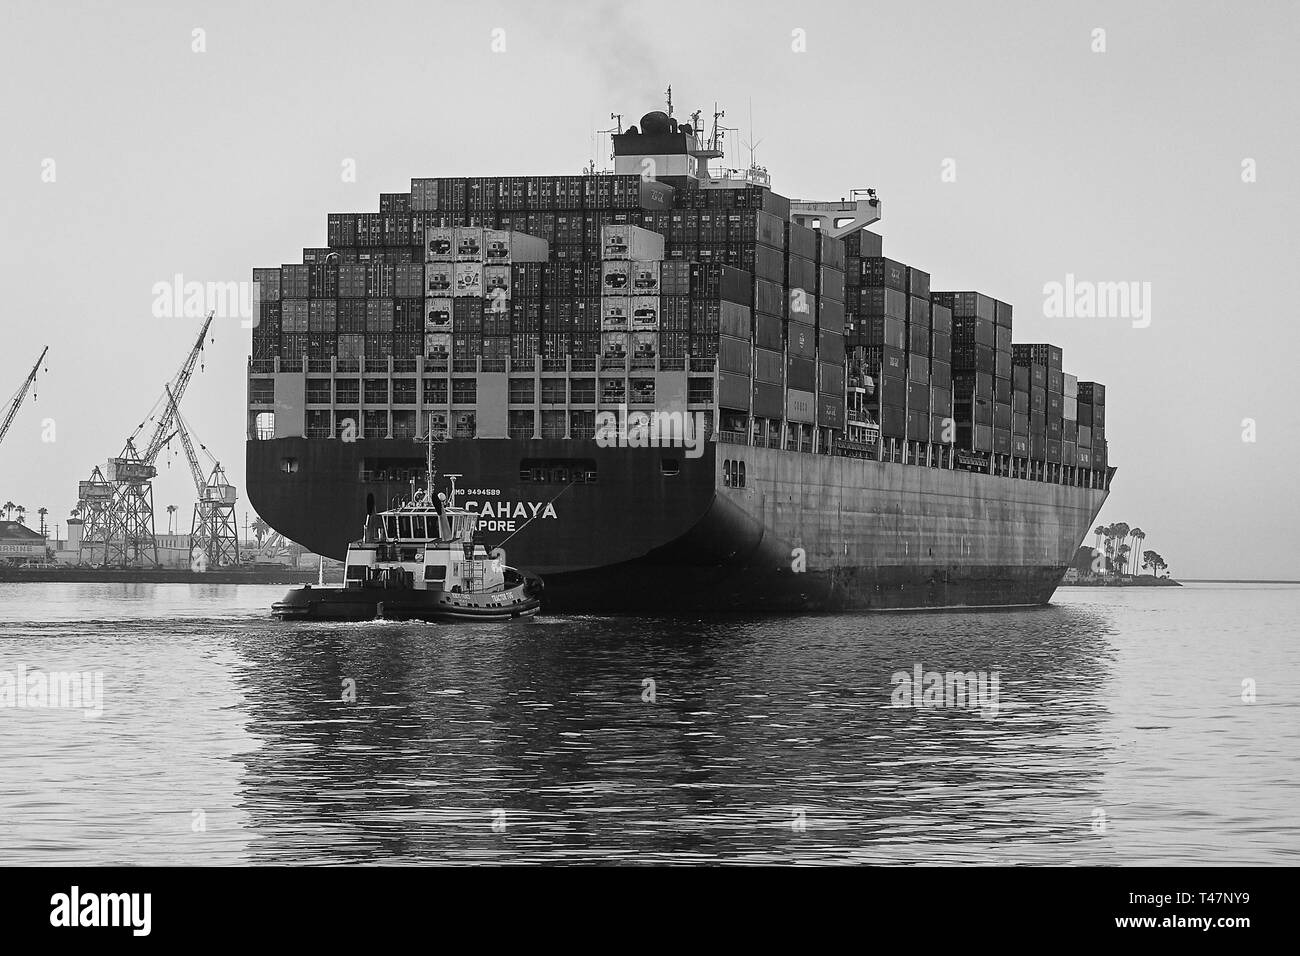 Container Ship, KOTA CAHAYA, Steaming Through The Narrow Los Angeles Main Channel As She Departs The Port Of Los Angeles, California, USA. - Stock Image